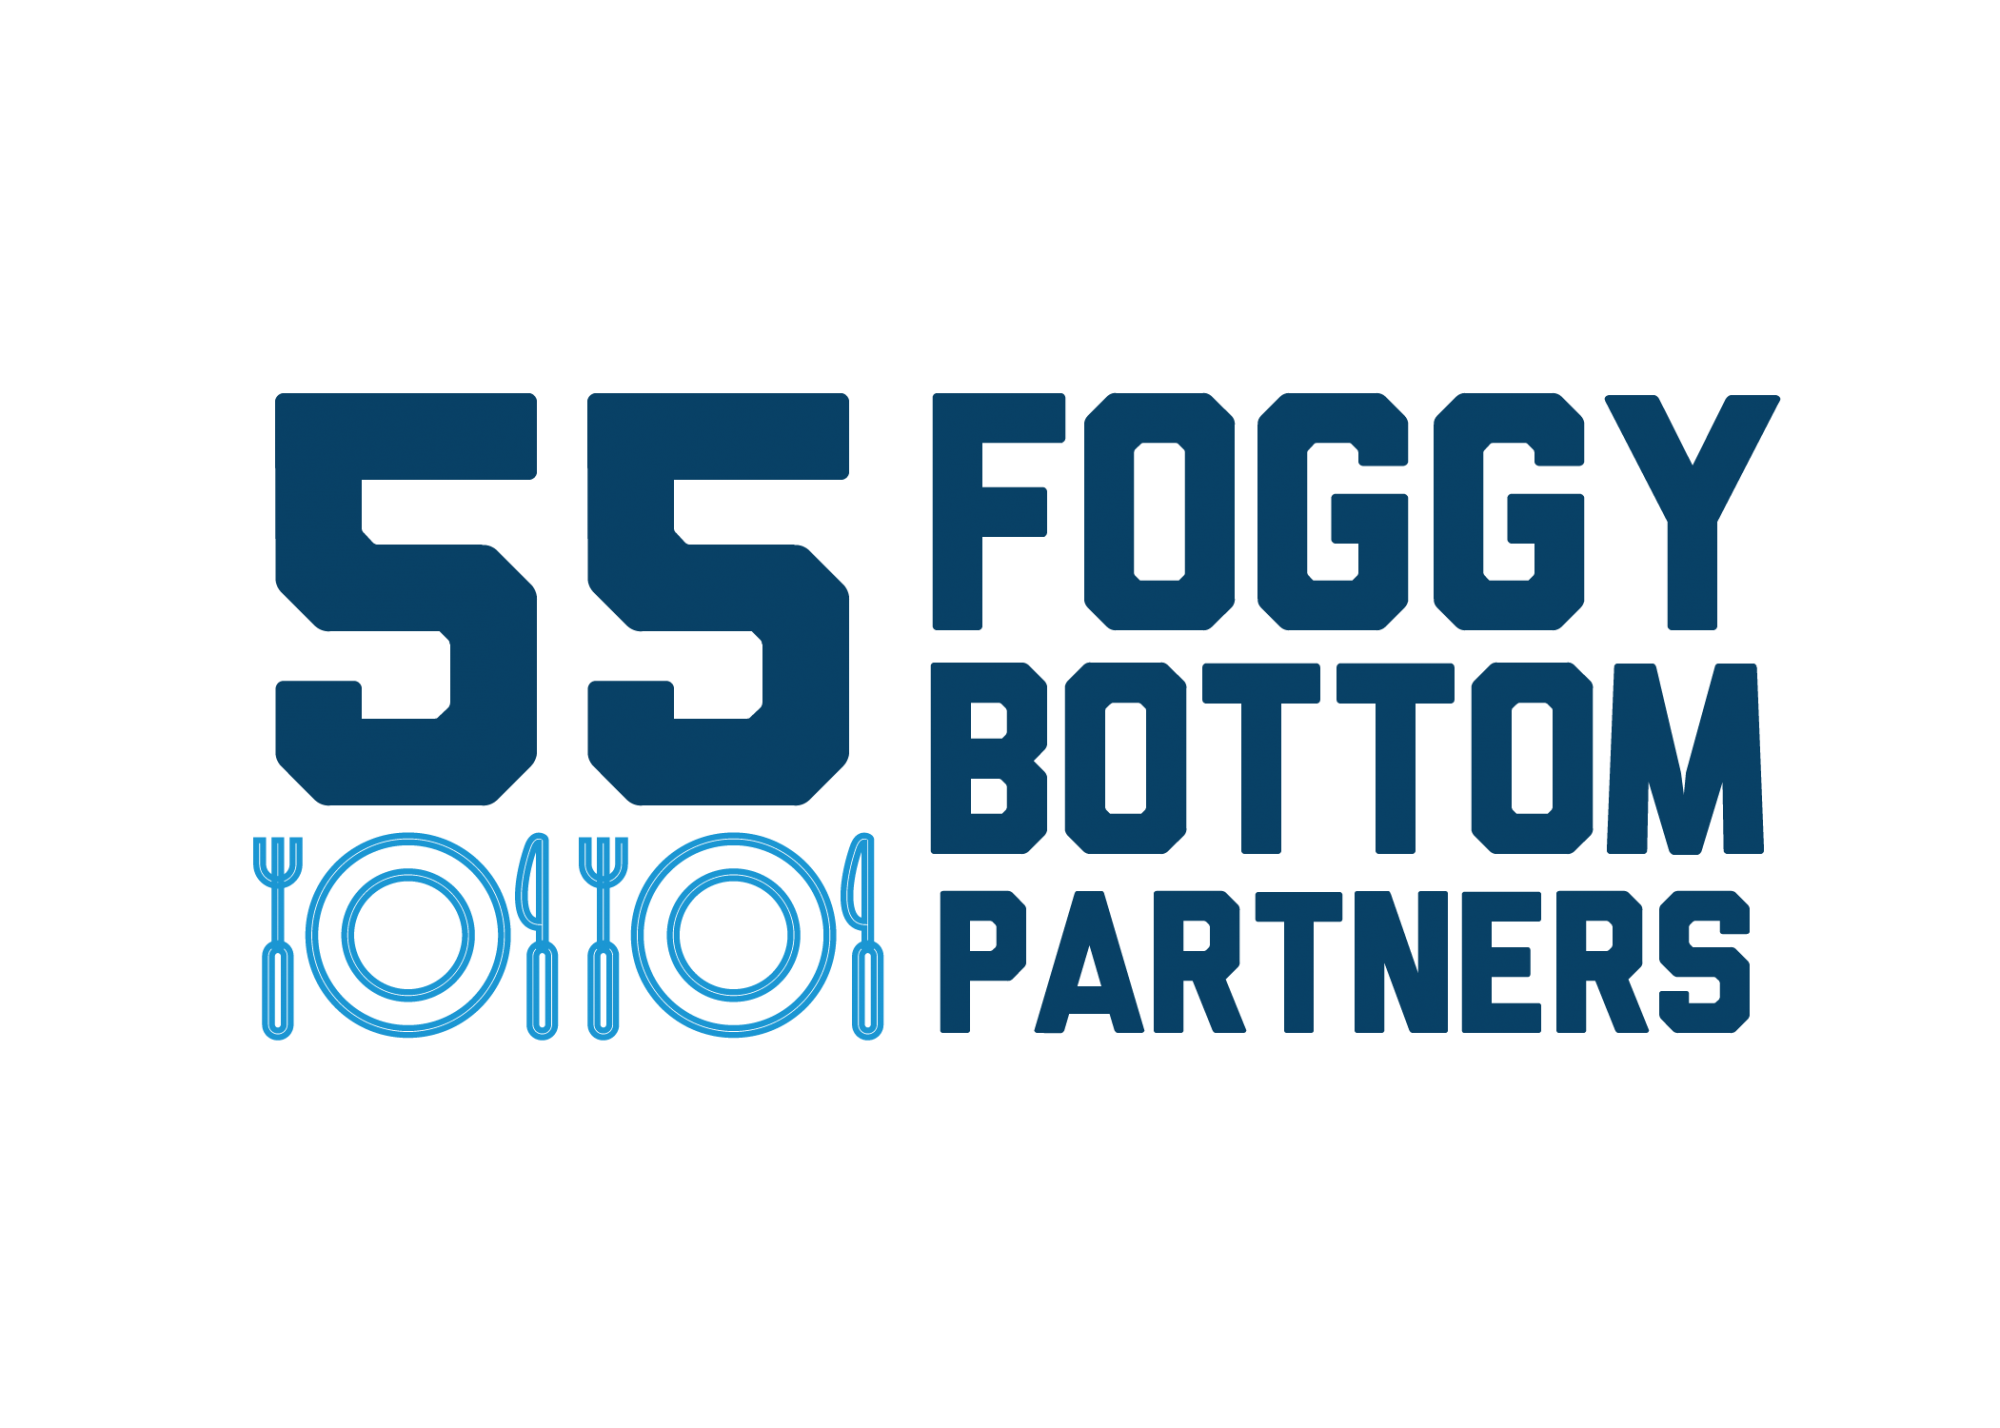 55+ Foggy Bottom Partners